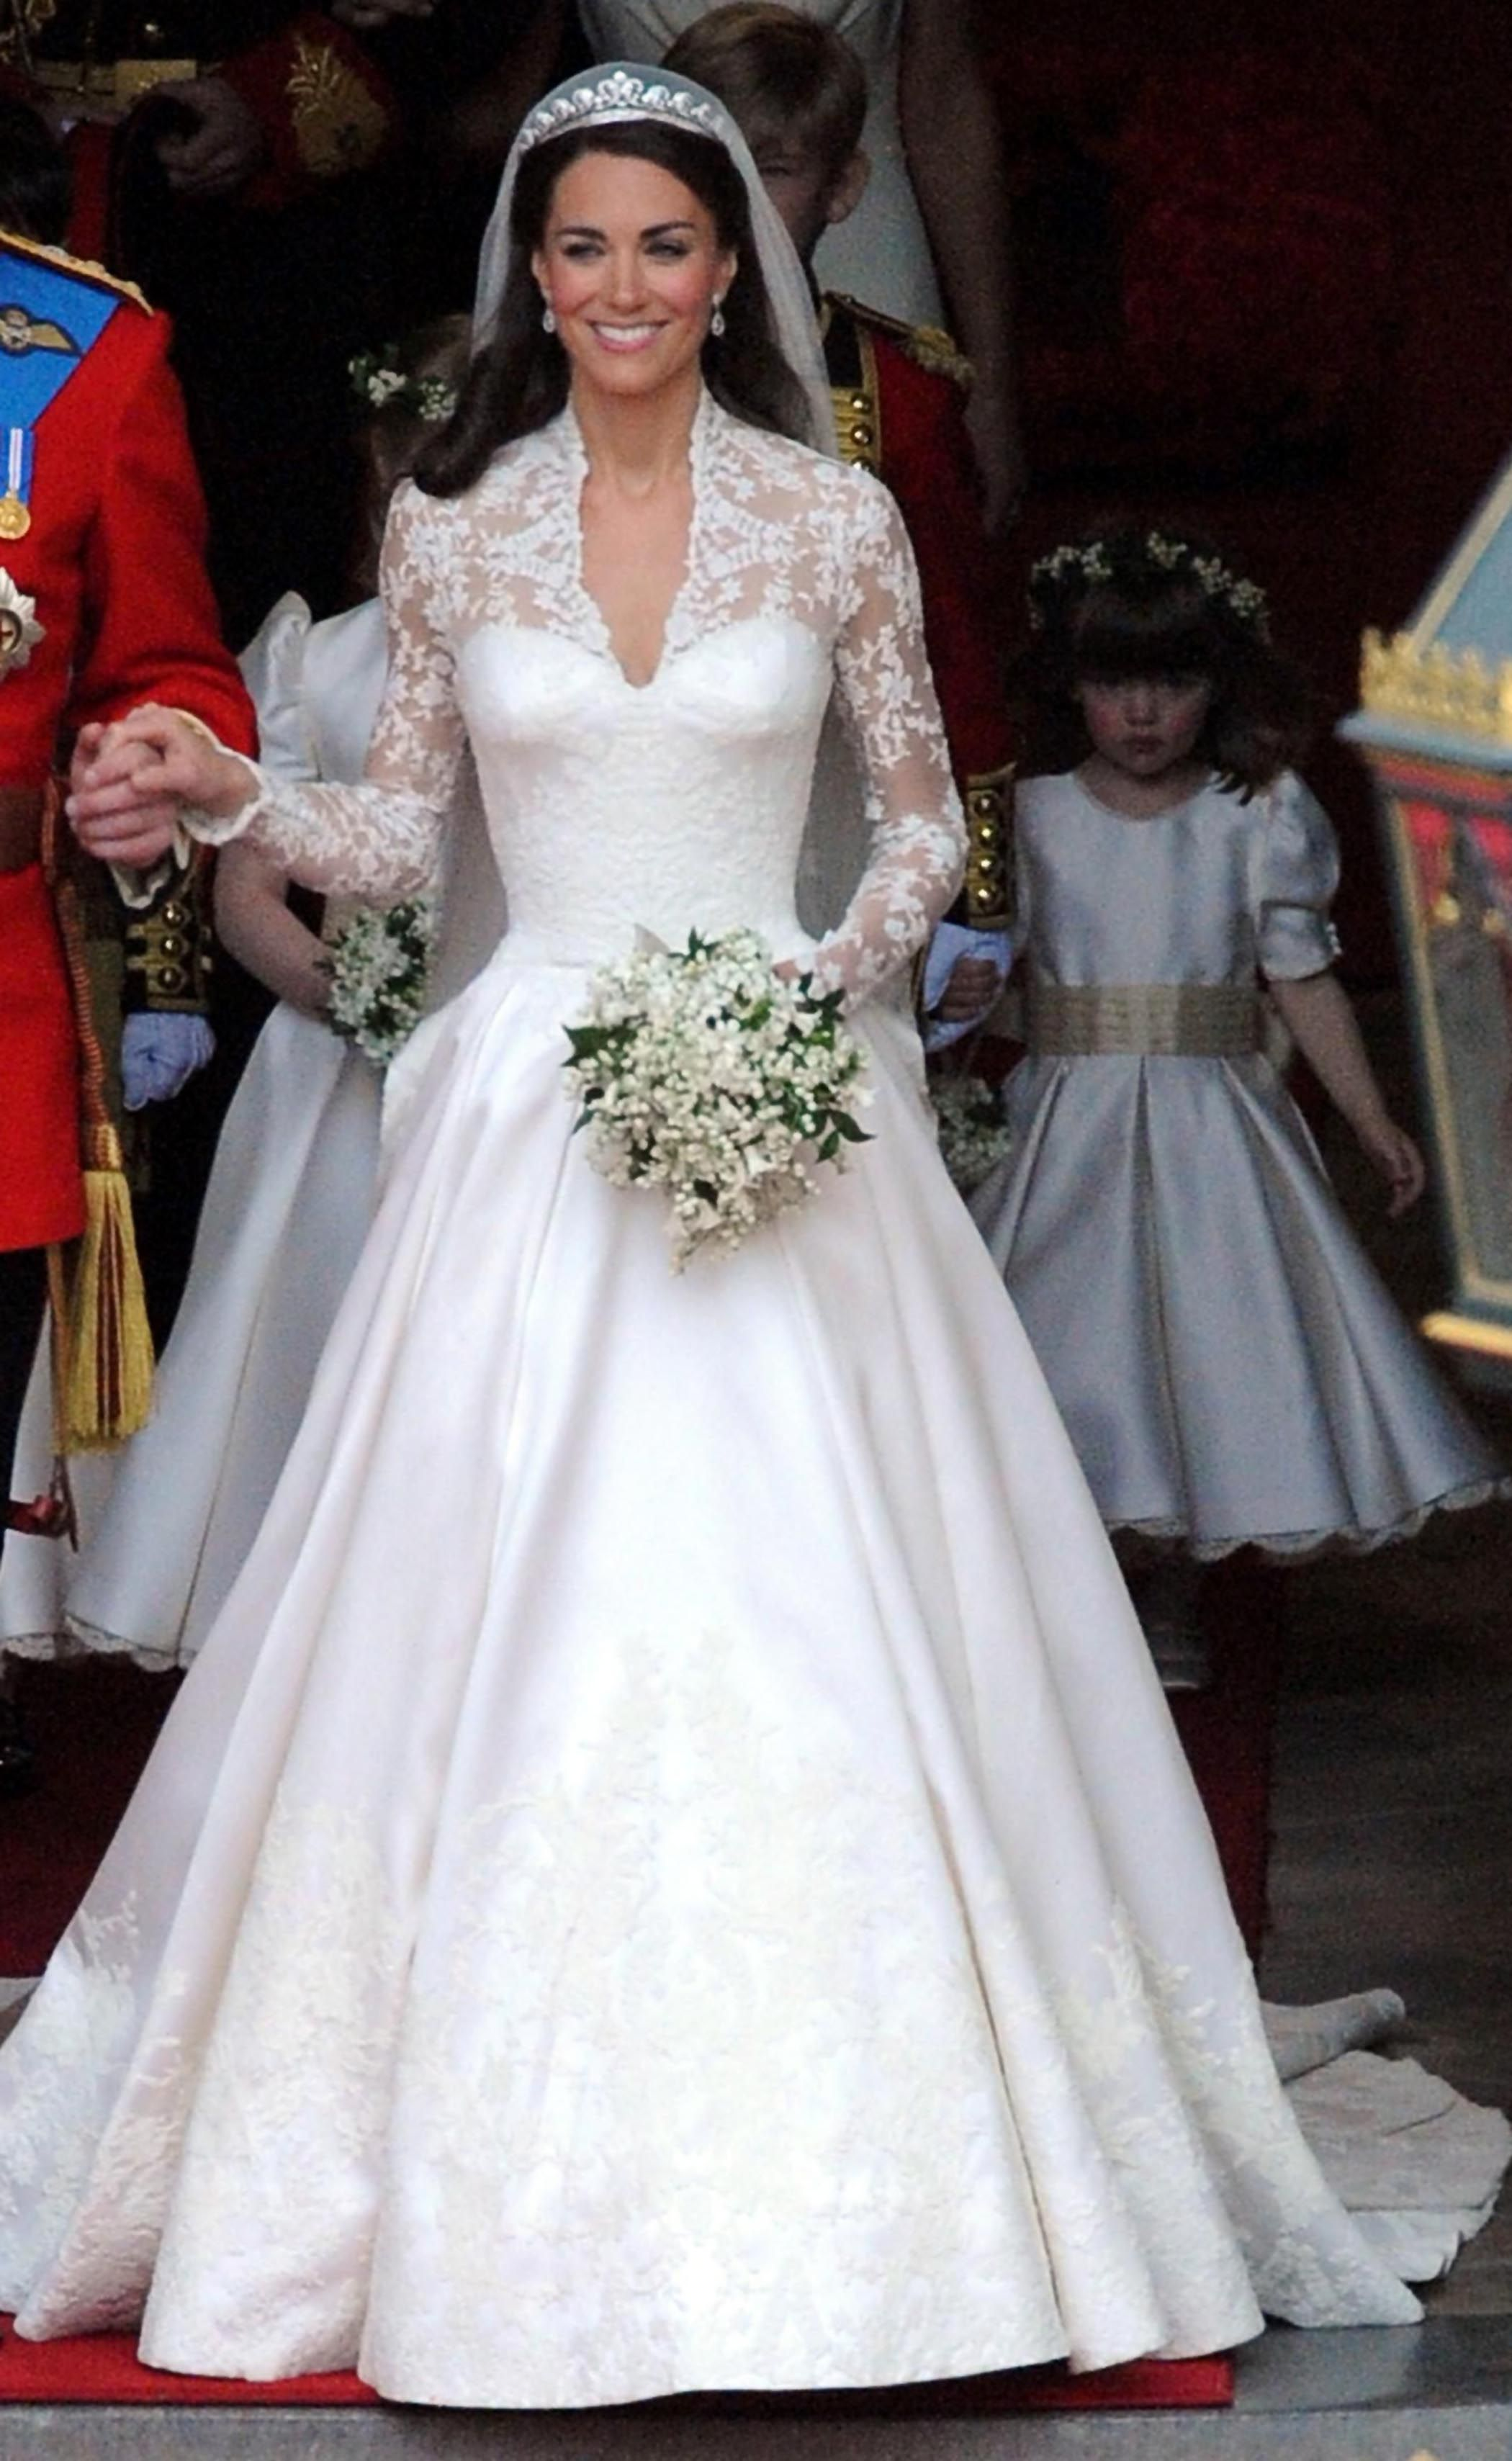 10 New Rules For Wedding Dresses Kate Middleton Wedding Dress